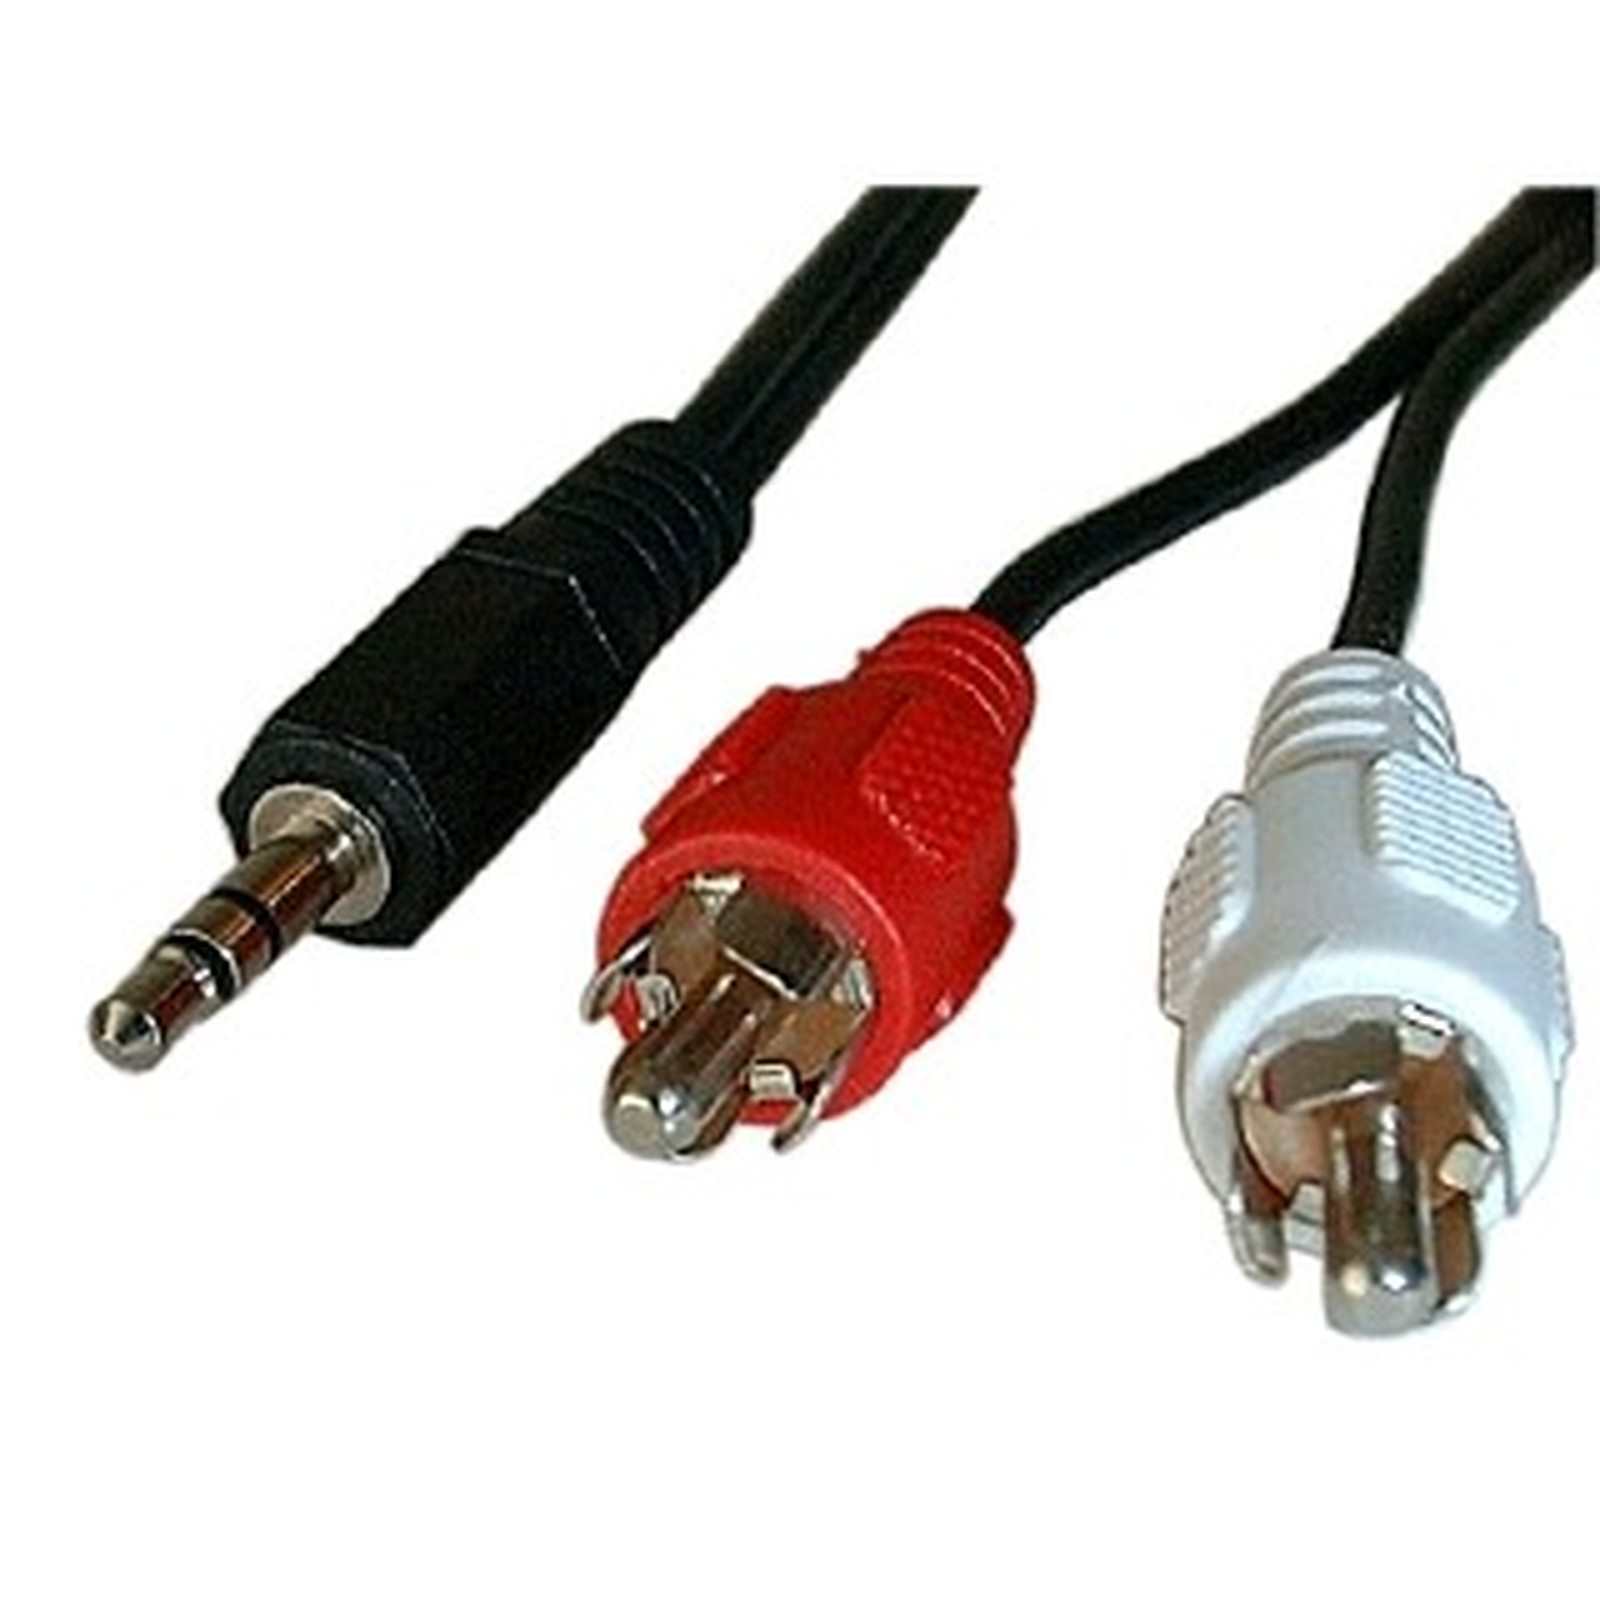 Cable de audio Jack 3,5 mm estéreo macho / 2 RCA machos (1,5 metros)